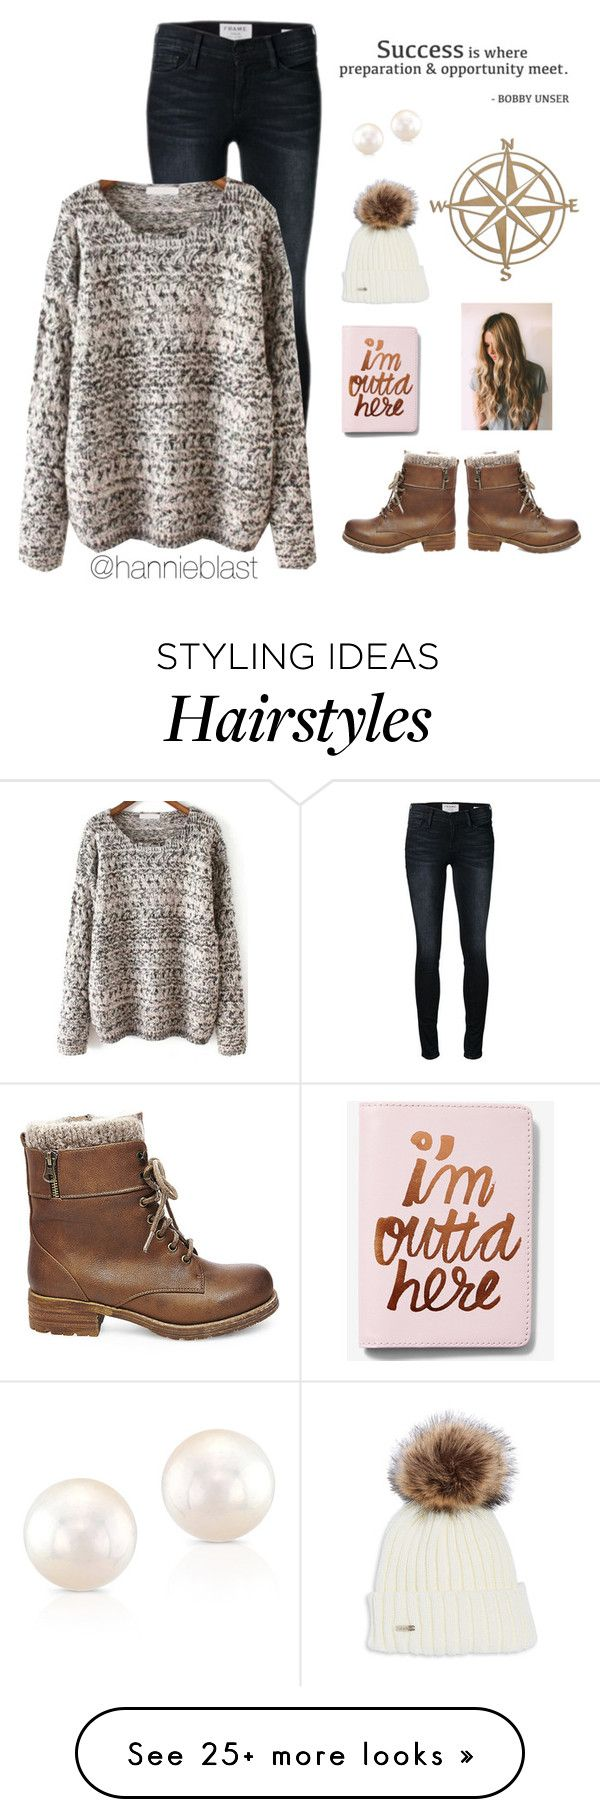 """""""O P P O R T U N I T Y"""" by hannieblast on Polyvore featuring Frame, Steve Madden, Anne Sisteron, WALL and Express"""